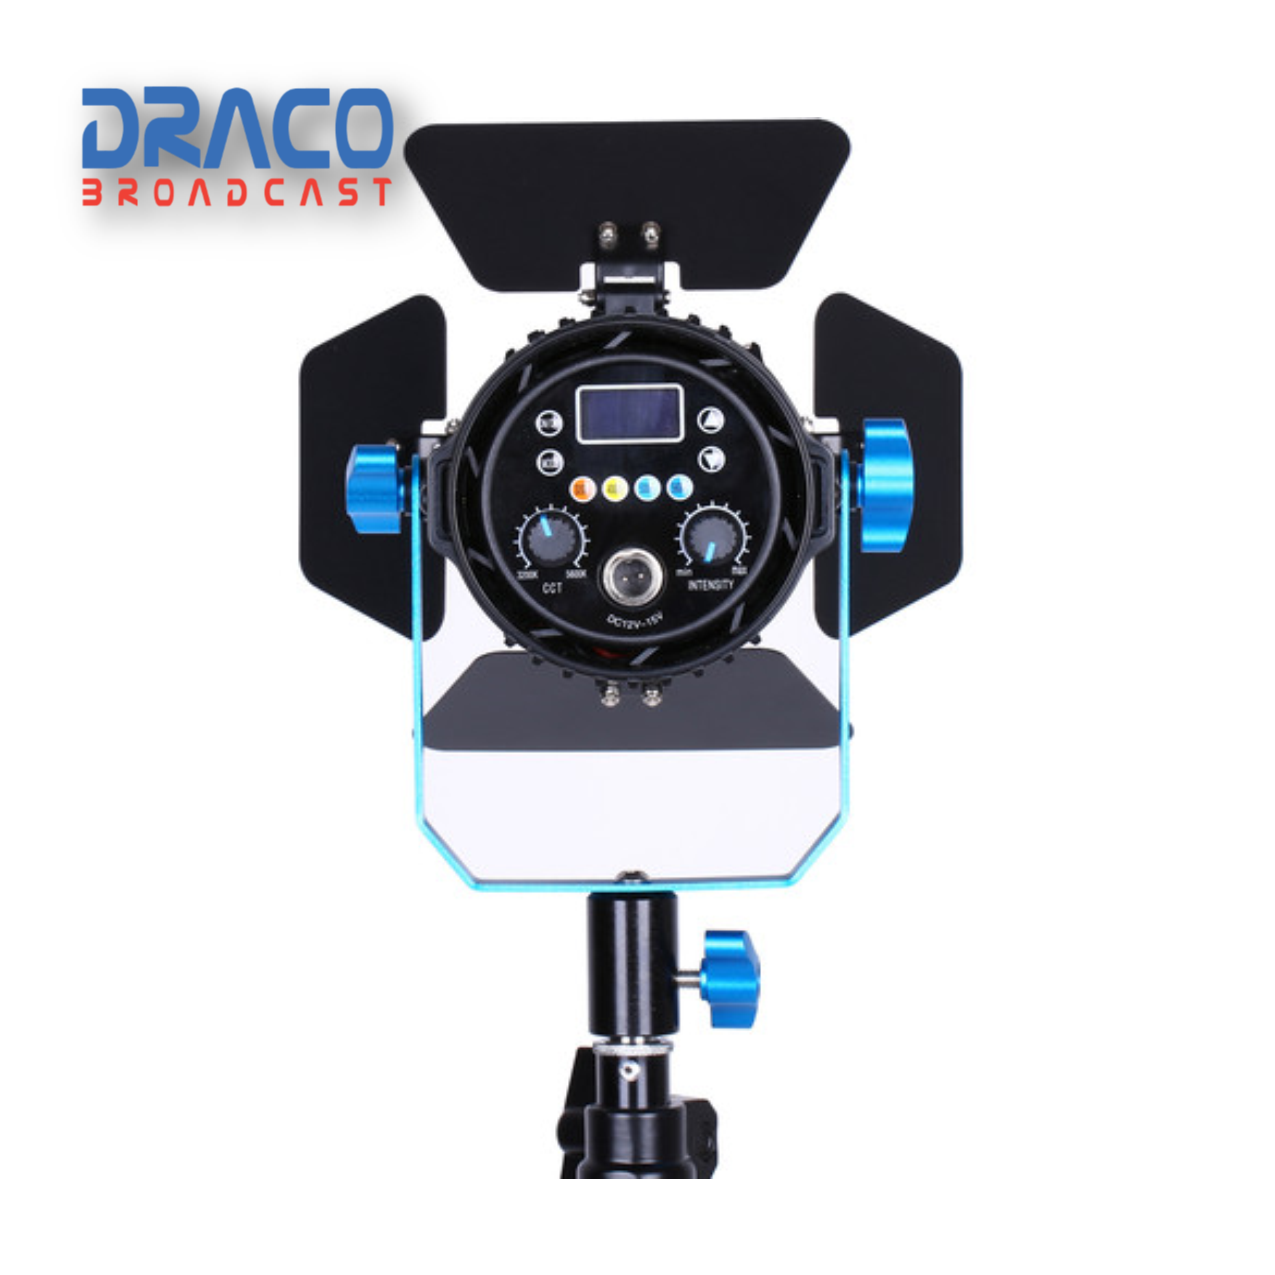 Dracast Boltray Plus 600 Daylight 3 Light Kit with Dual NP-F Battery Plates and Injection Molded Travel Case Kit Lights Draco Broadcast